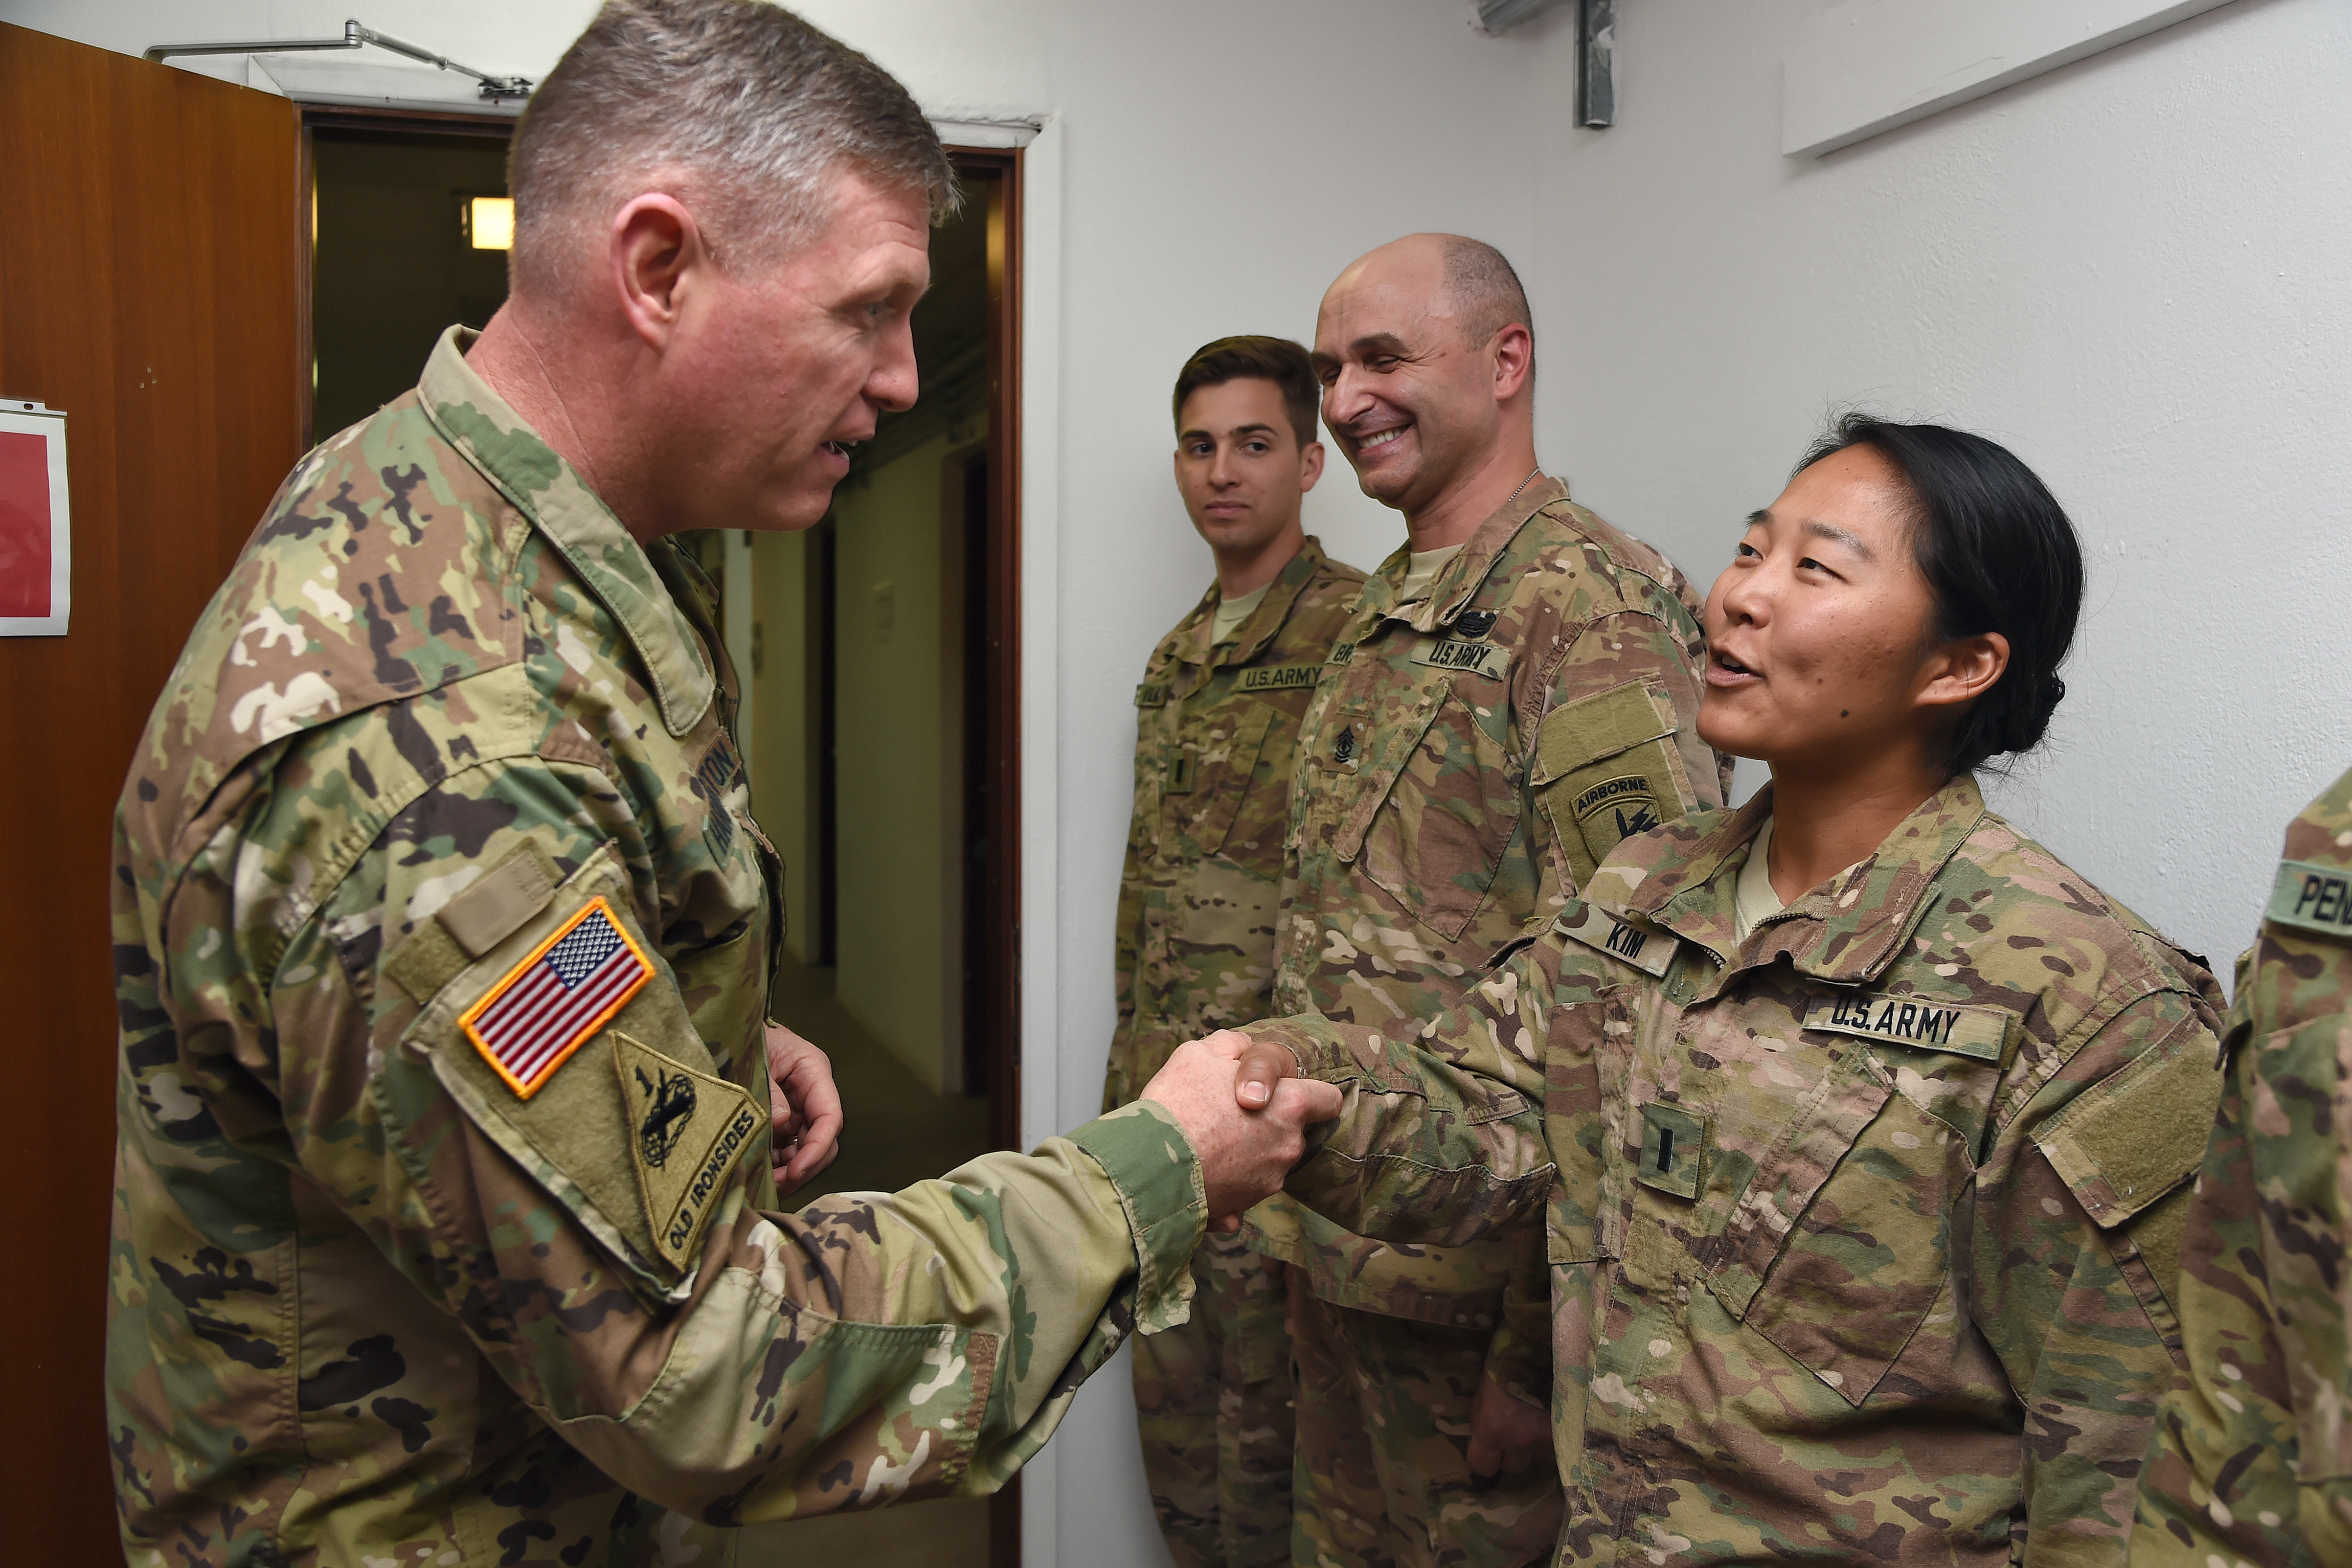 U.S. Army Maj. Gen. Joseph Harrington, commanding general of U.S. Army Africa recognizes 1st Lt. Elizabeth Kim for outstanding performance as officer in charge of environmental health at Camp Lemonnier, Djibouti, March 22, 2017. Harrington's visit included the opportunity to meet with Camp Lemonnier and Combined Joint Task Force-Horn of Africa leadership, as well as recognize numerous deployed Soldiers identified as superior performers while serving in the Horn of Africa. (U.S. Air National Guard photo by Master Sgt. Paul Gorman)